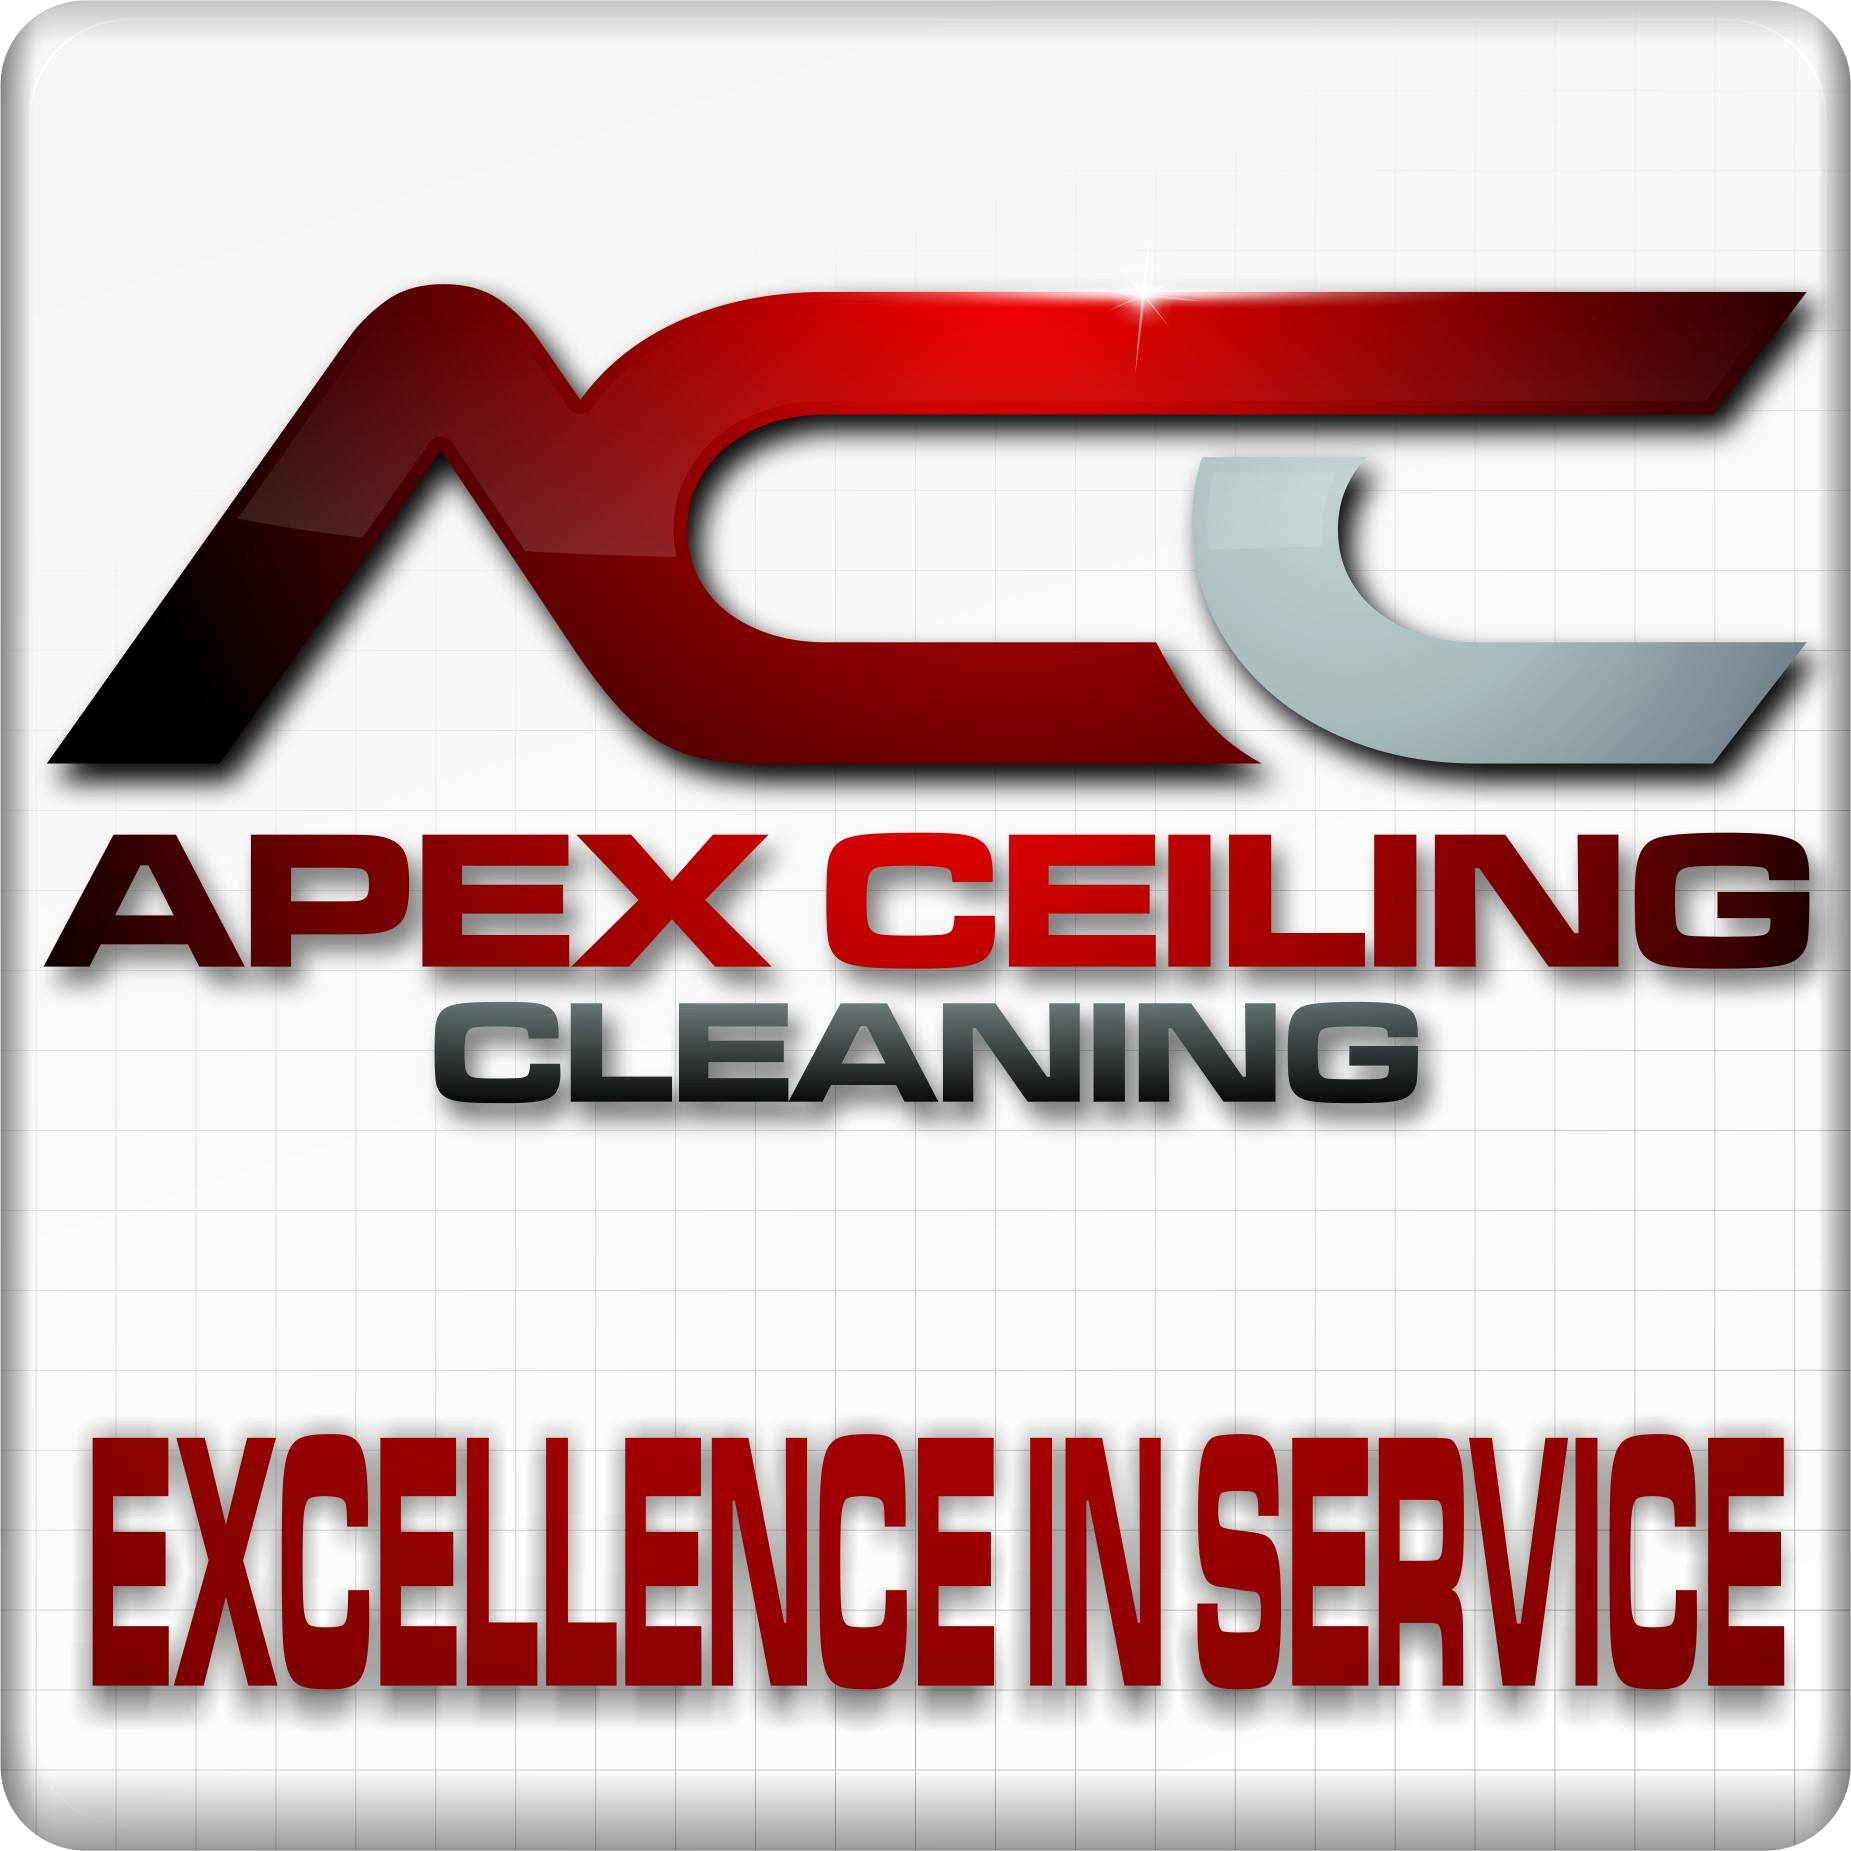 Apex Ceiling Cleaning